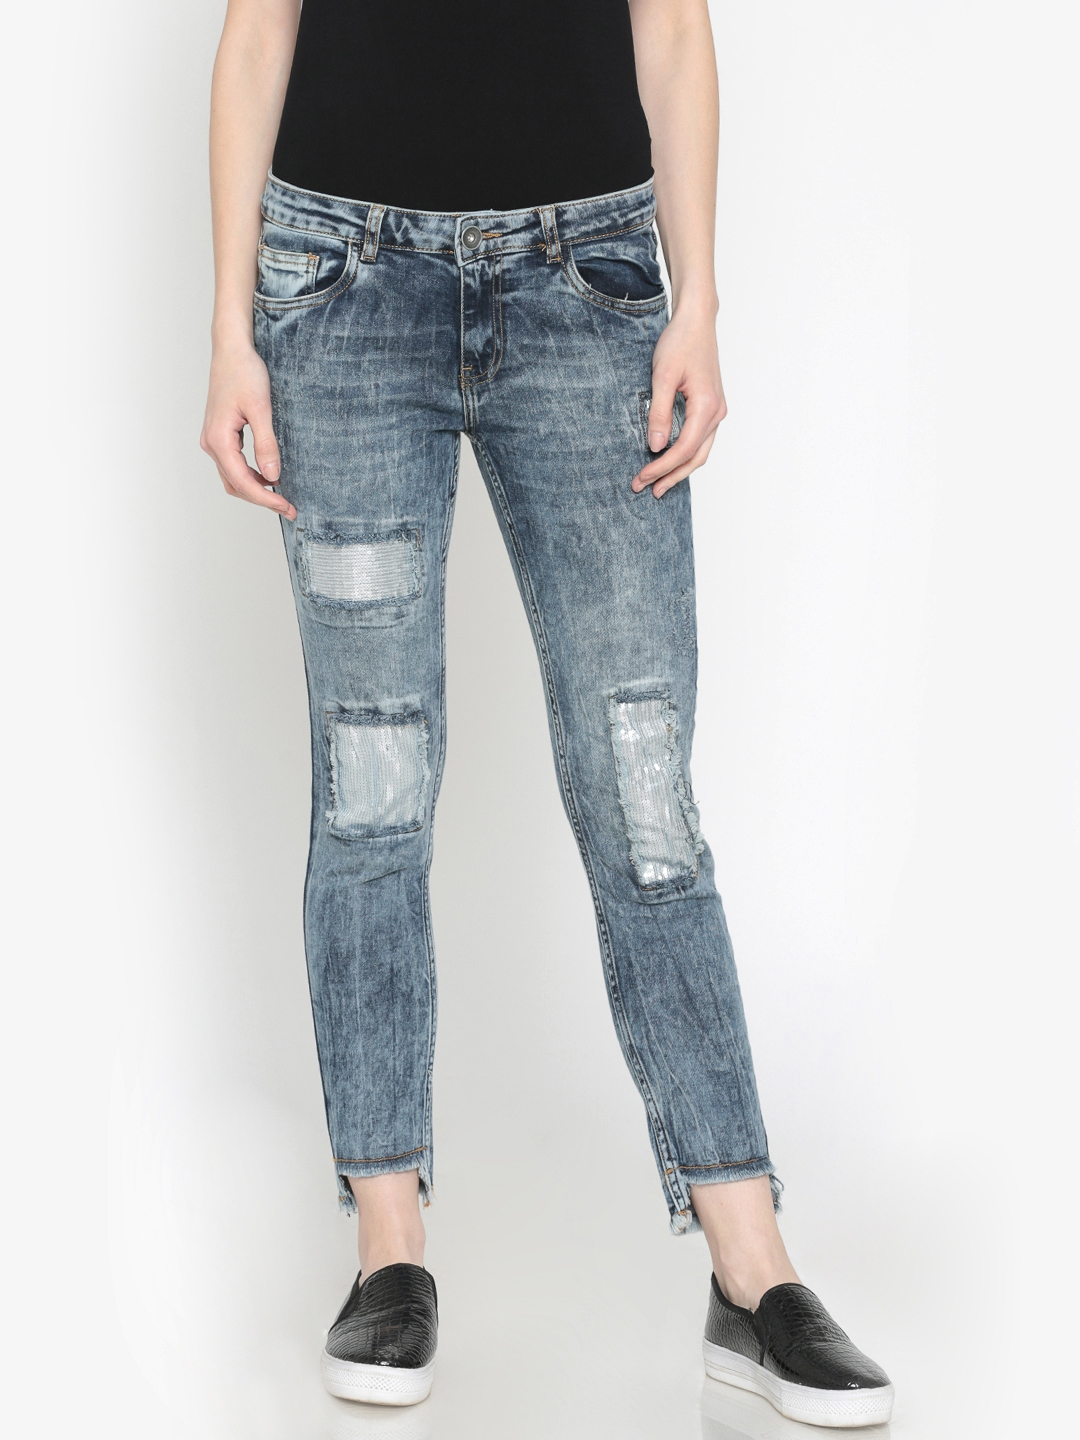 97df196a81 Ginger by Lifestyle Women Blue Slim Fit Mid-Rise Highly Distressed Stretchable  Jeans